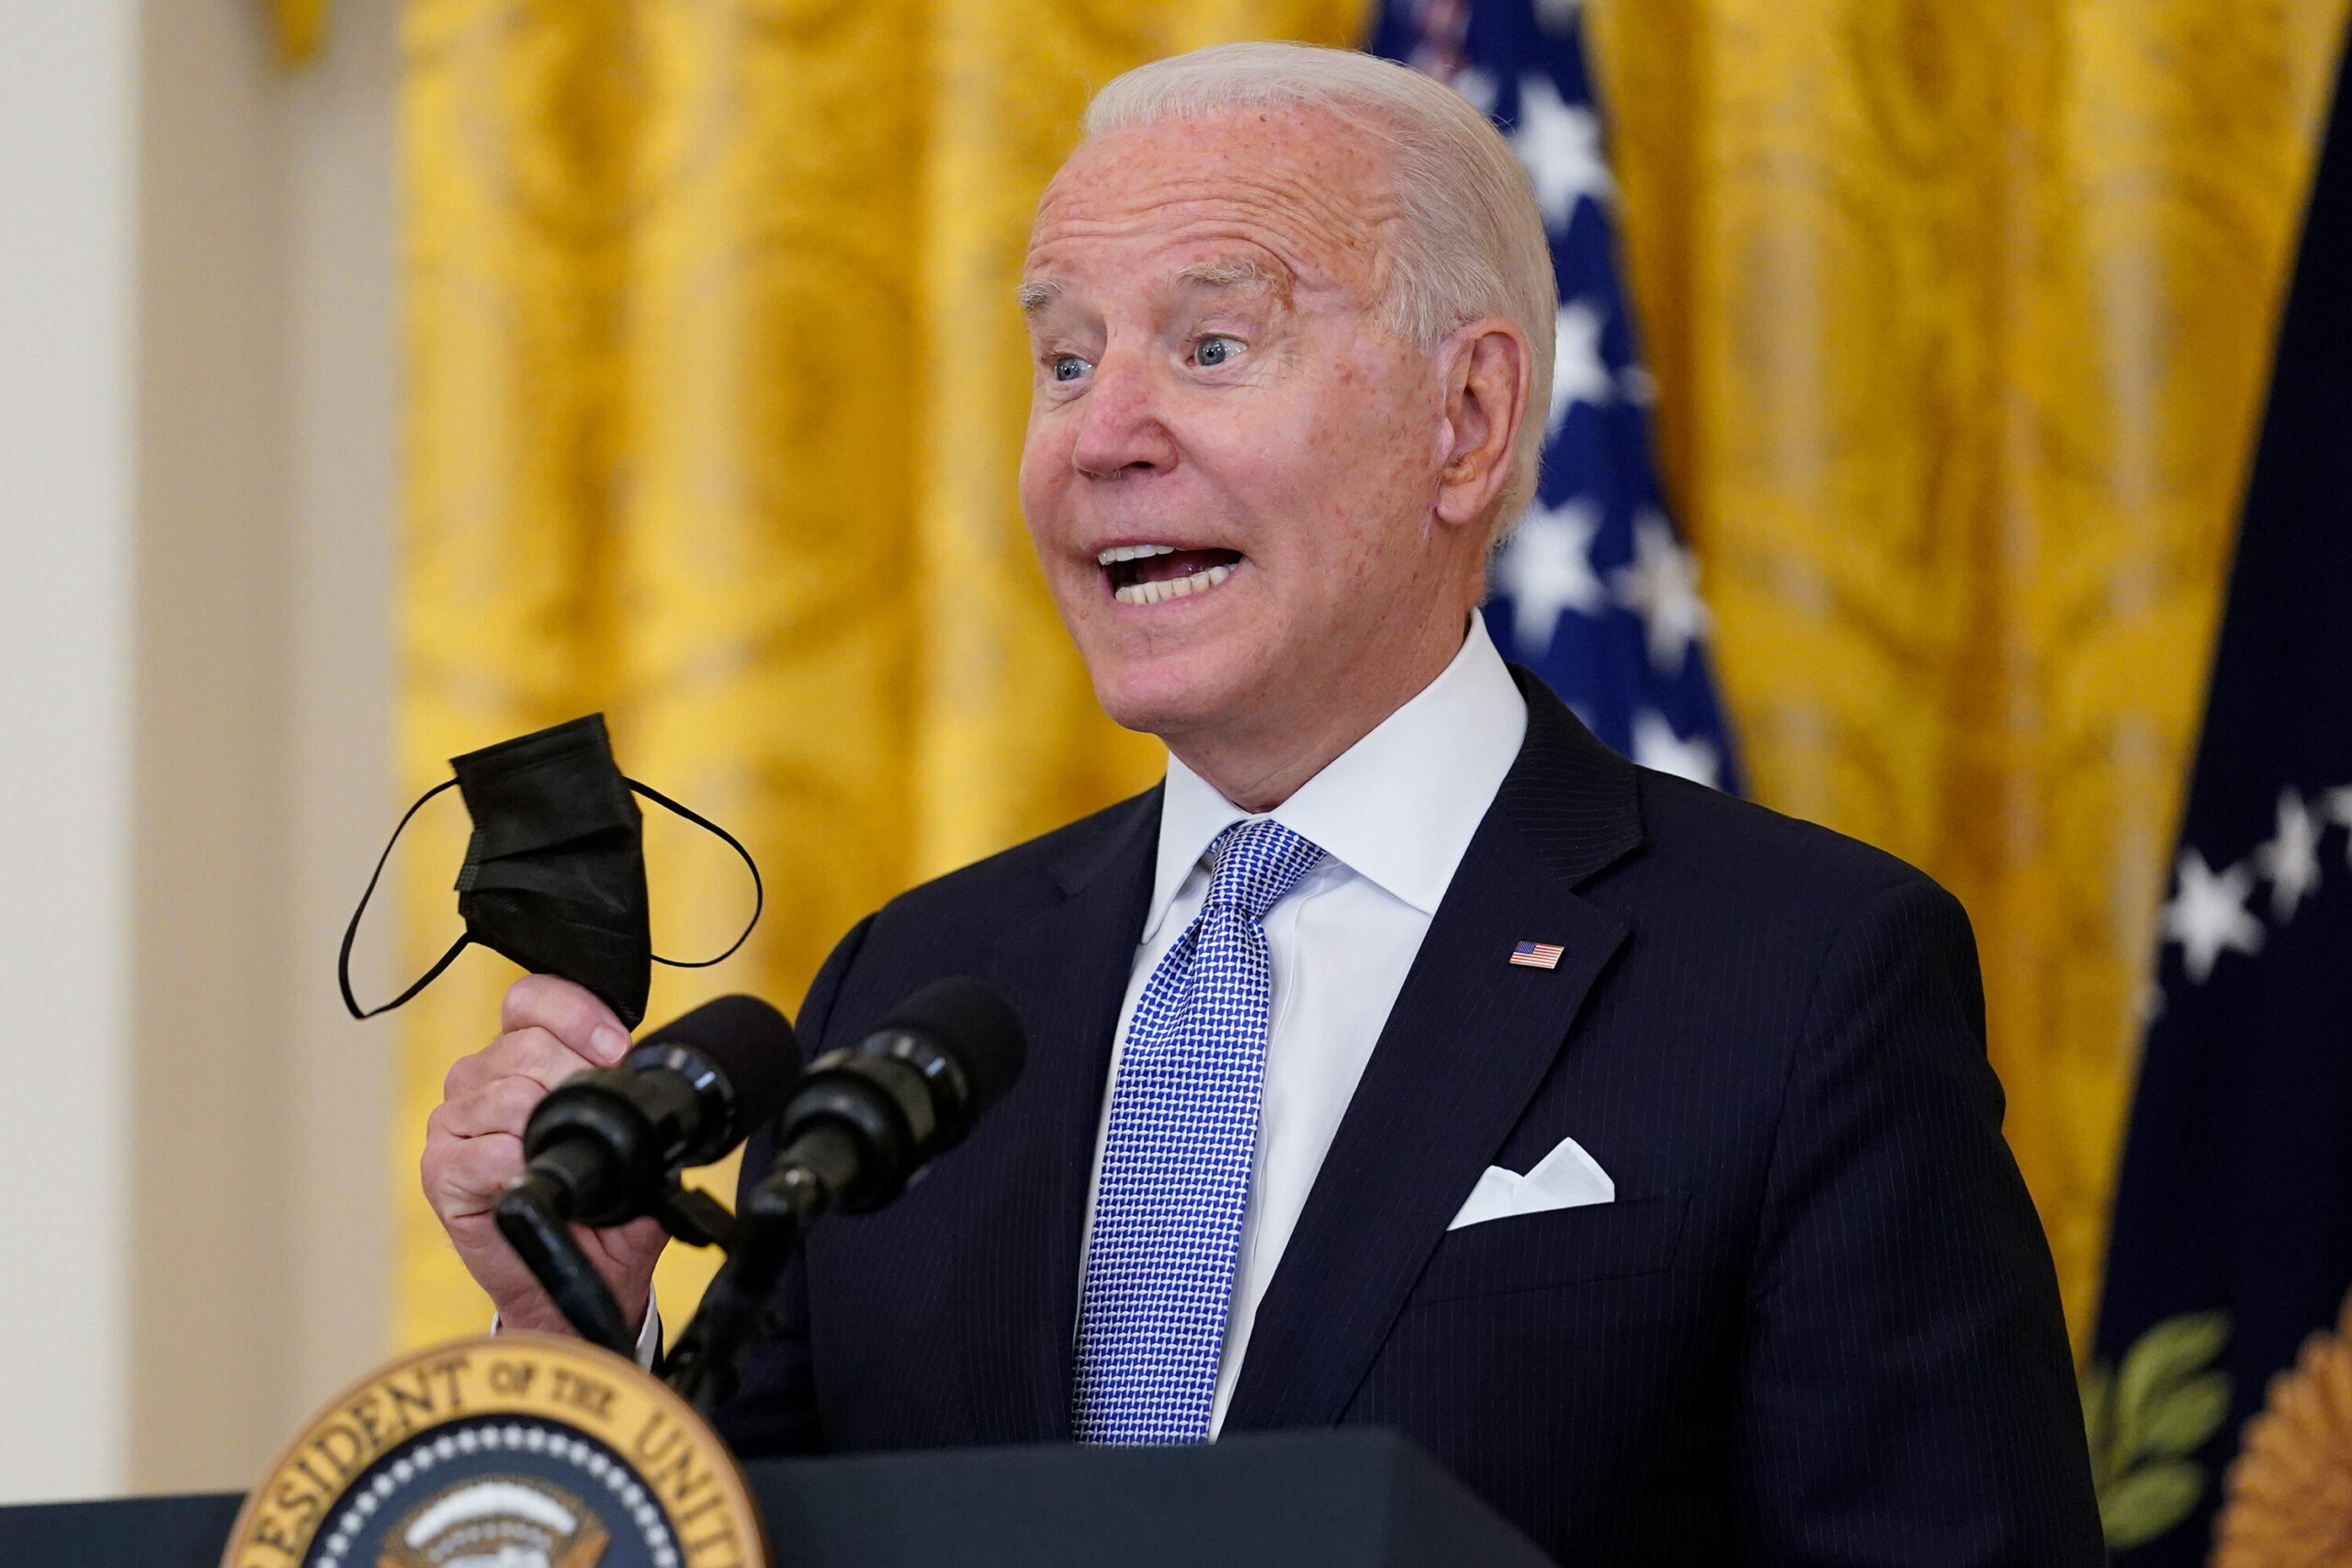 <i>Susan Walsh/AP</i><br/>President Joe Biden holds his face mask as he speaks in the East Room of the White House in Washington